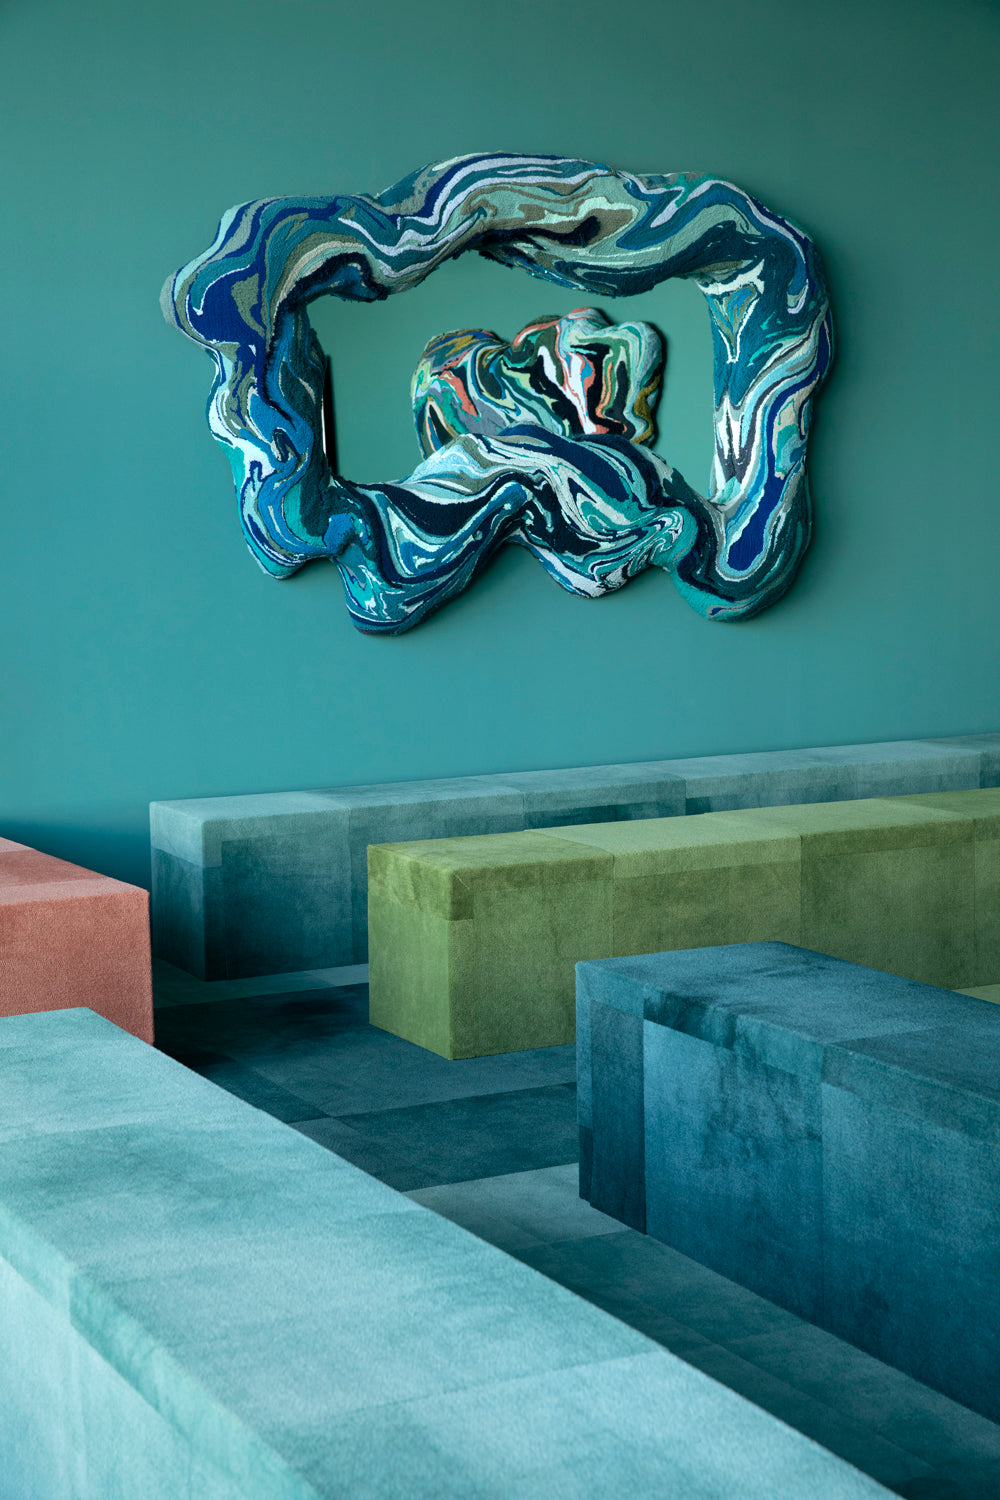 Trish Andersen tufted mirrors Design Miami + SCAD